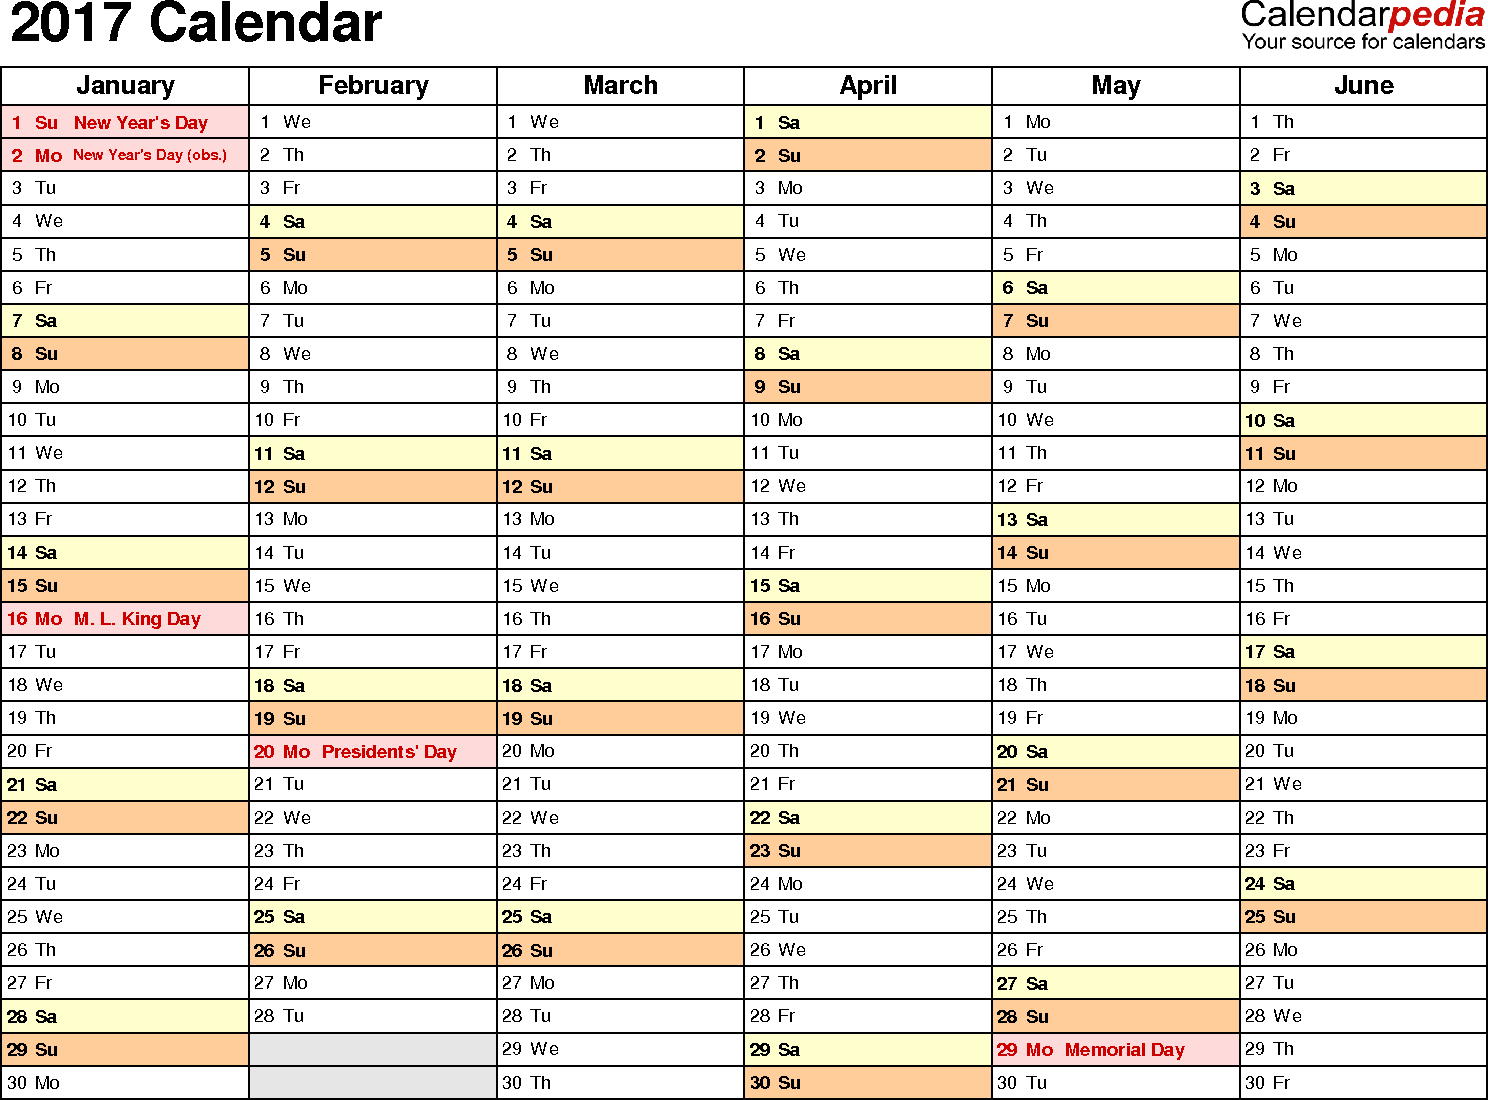 Ediblewildsus  Prepossessing  Calendar  Download  Free Printable Excel Templates Xls With Entrancing Template   Calendar For Excel Months Horizontally  Pages Landscape Orientation With Charming Excel Sumif Criteria Also When Was Microsoft Excel Invented In Addition How To Change Pdf To Excel Spreadsheet And Round To The Nearest Thousand In Excel As Well As Using Excel For Mail Merge Additionally How To Analyze Survey Results In Excel From Calendarpediacom With Ediblewildsus  Entrancing  Calendar  Download  Free Printable Excel Templates Xls With Charming Template   Calendar For Excel Months Horizontally  Pages Landscape Orientation And Prepossessing Excel Sumif Criteria Also When Was Microsoft Excel Invented In Addition How To Change Pdf To Excel Spreadsheet From Calendarpediacom